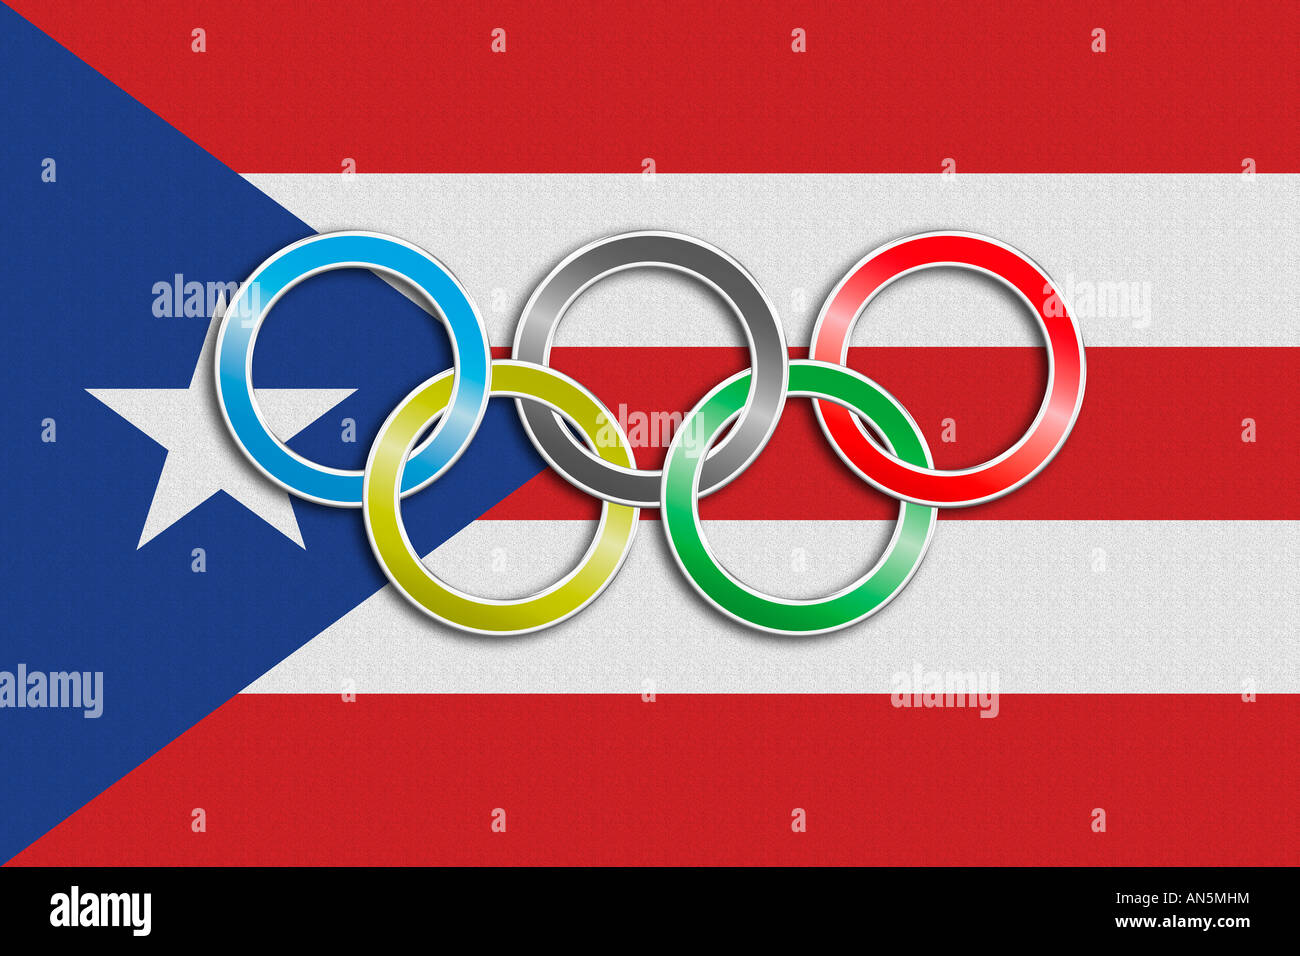 Flag of puerto rico with olympic symbol stock photo 15420367 alamy flag of puerto rico with olympic symbol biocorpaavc Image collections